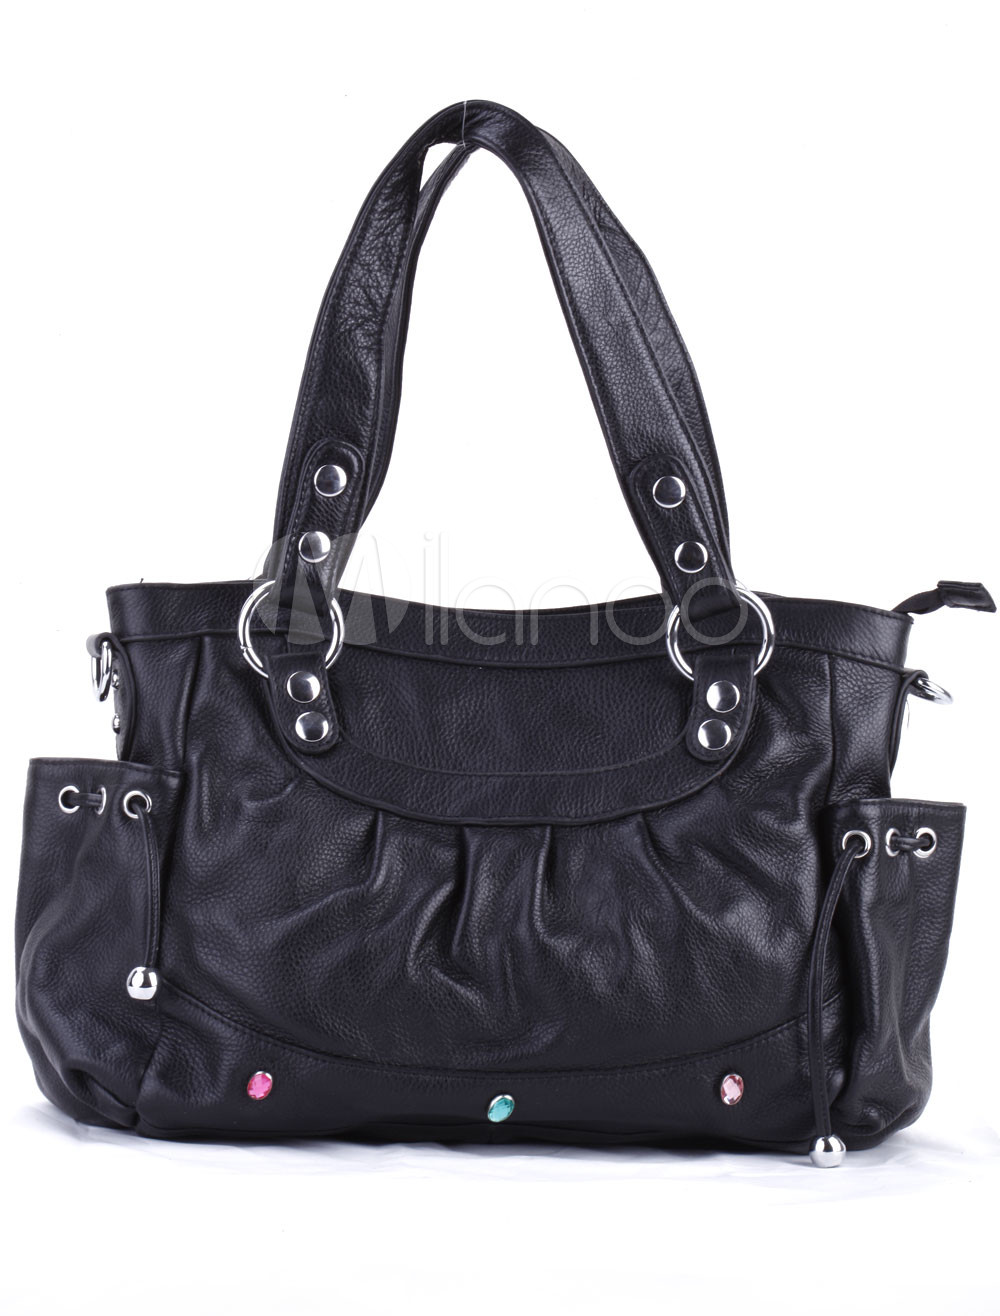 40*12*32cm Cute Black PU Tote Handbag